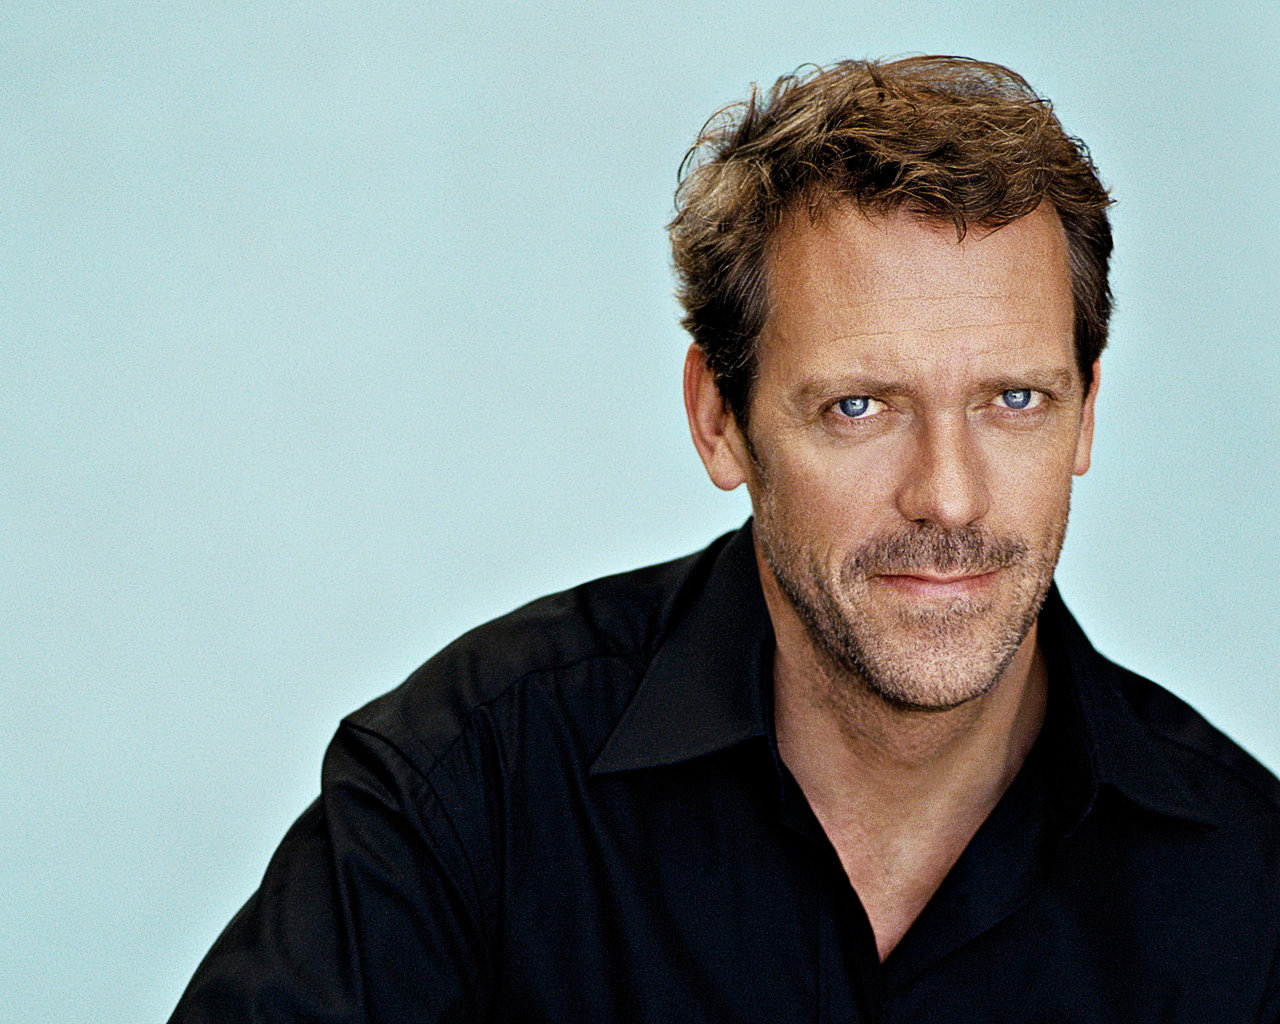 High resolution Dr. House hd 1280x1024 background ID:156675 for desktop